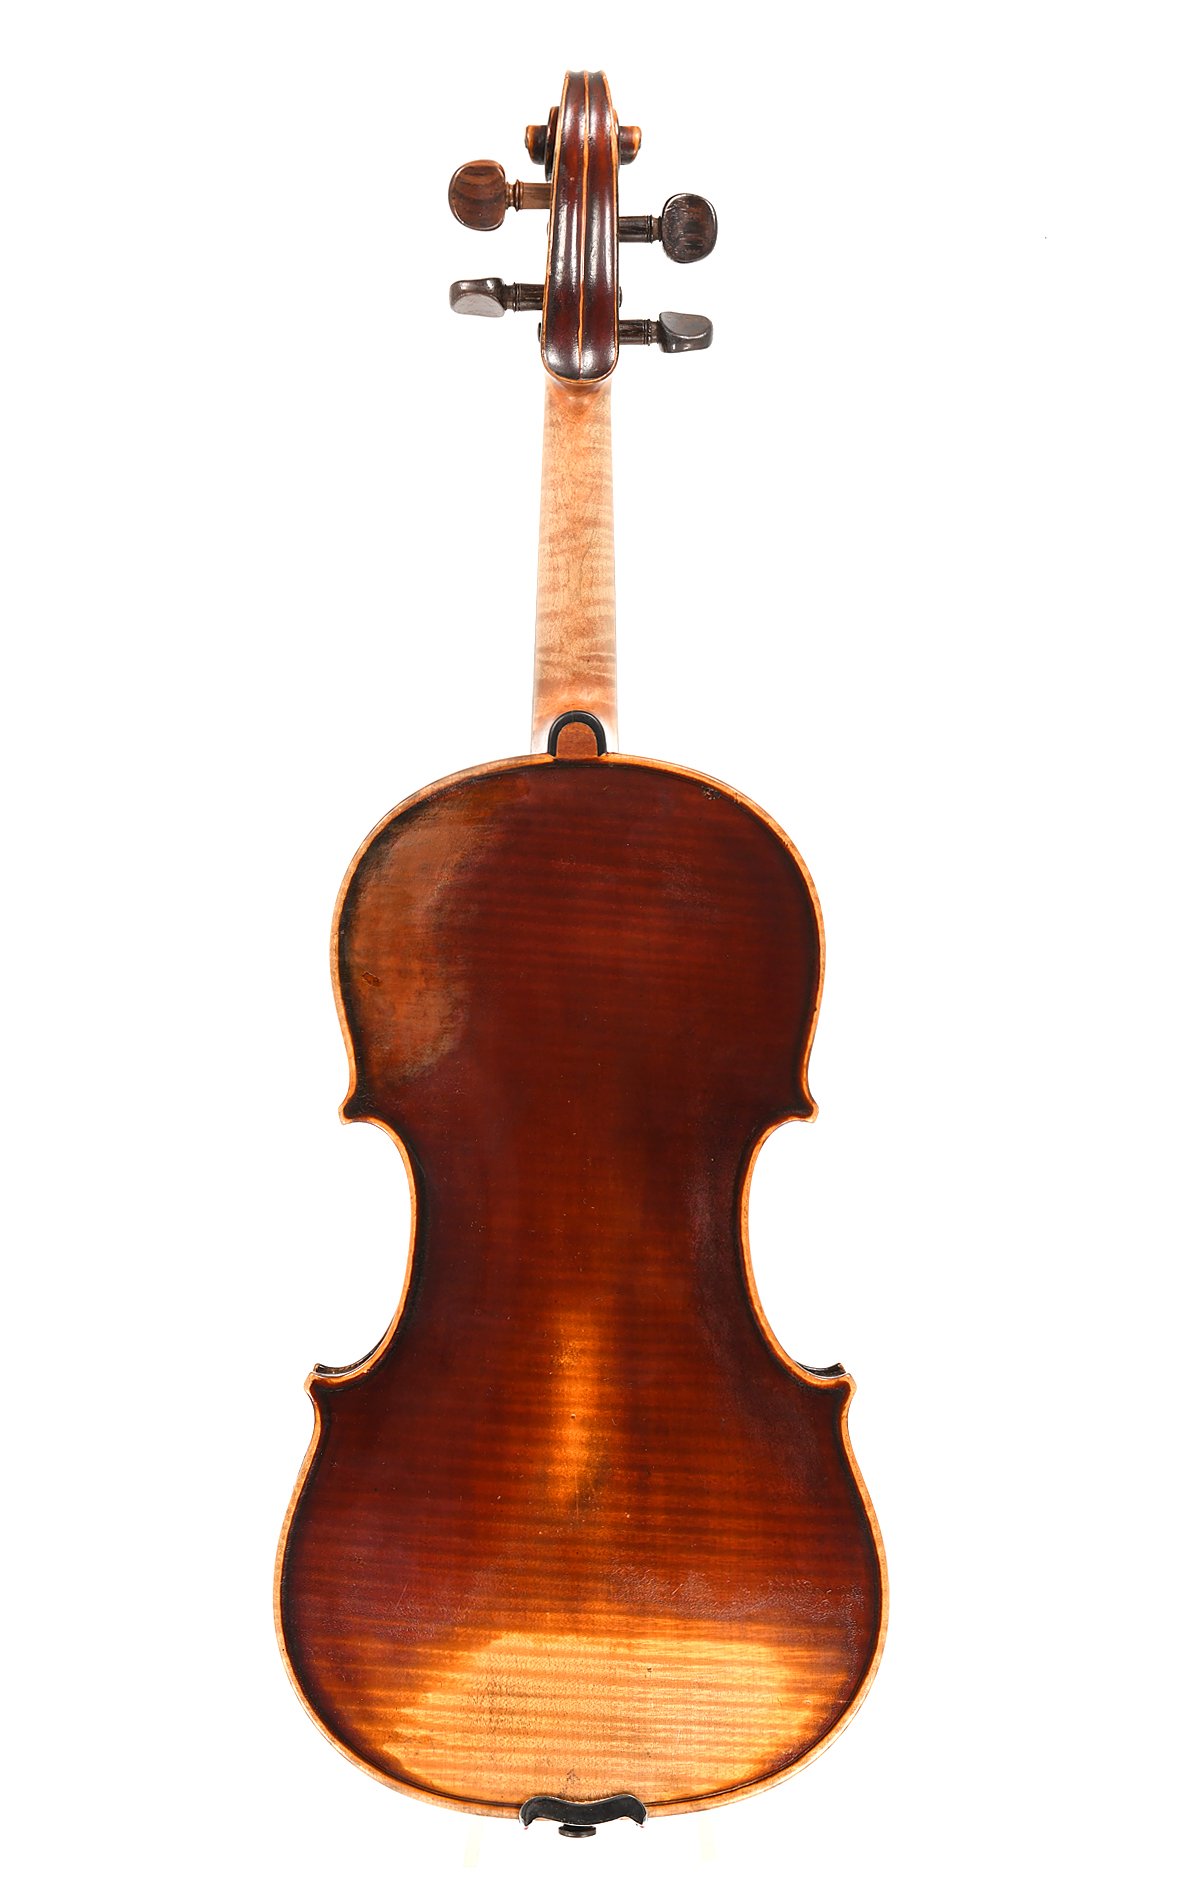 George Chanot jr. violin, maple back